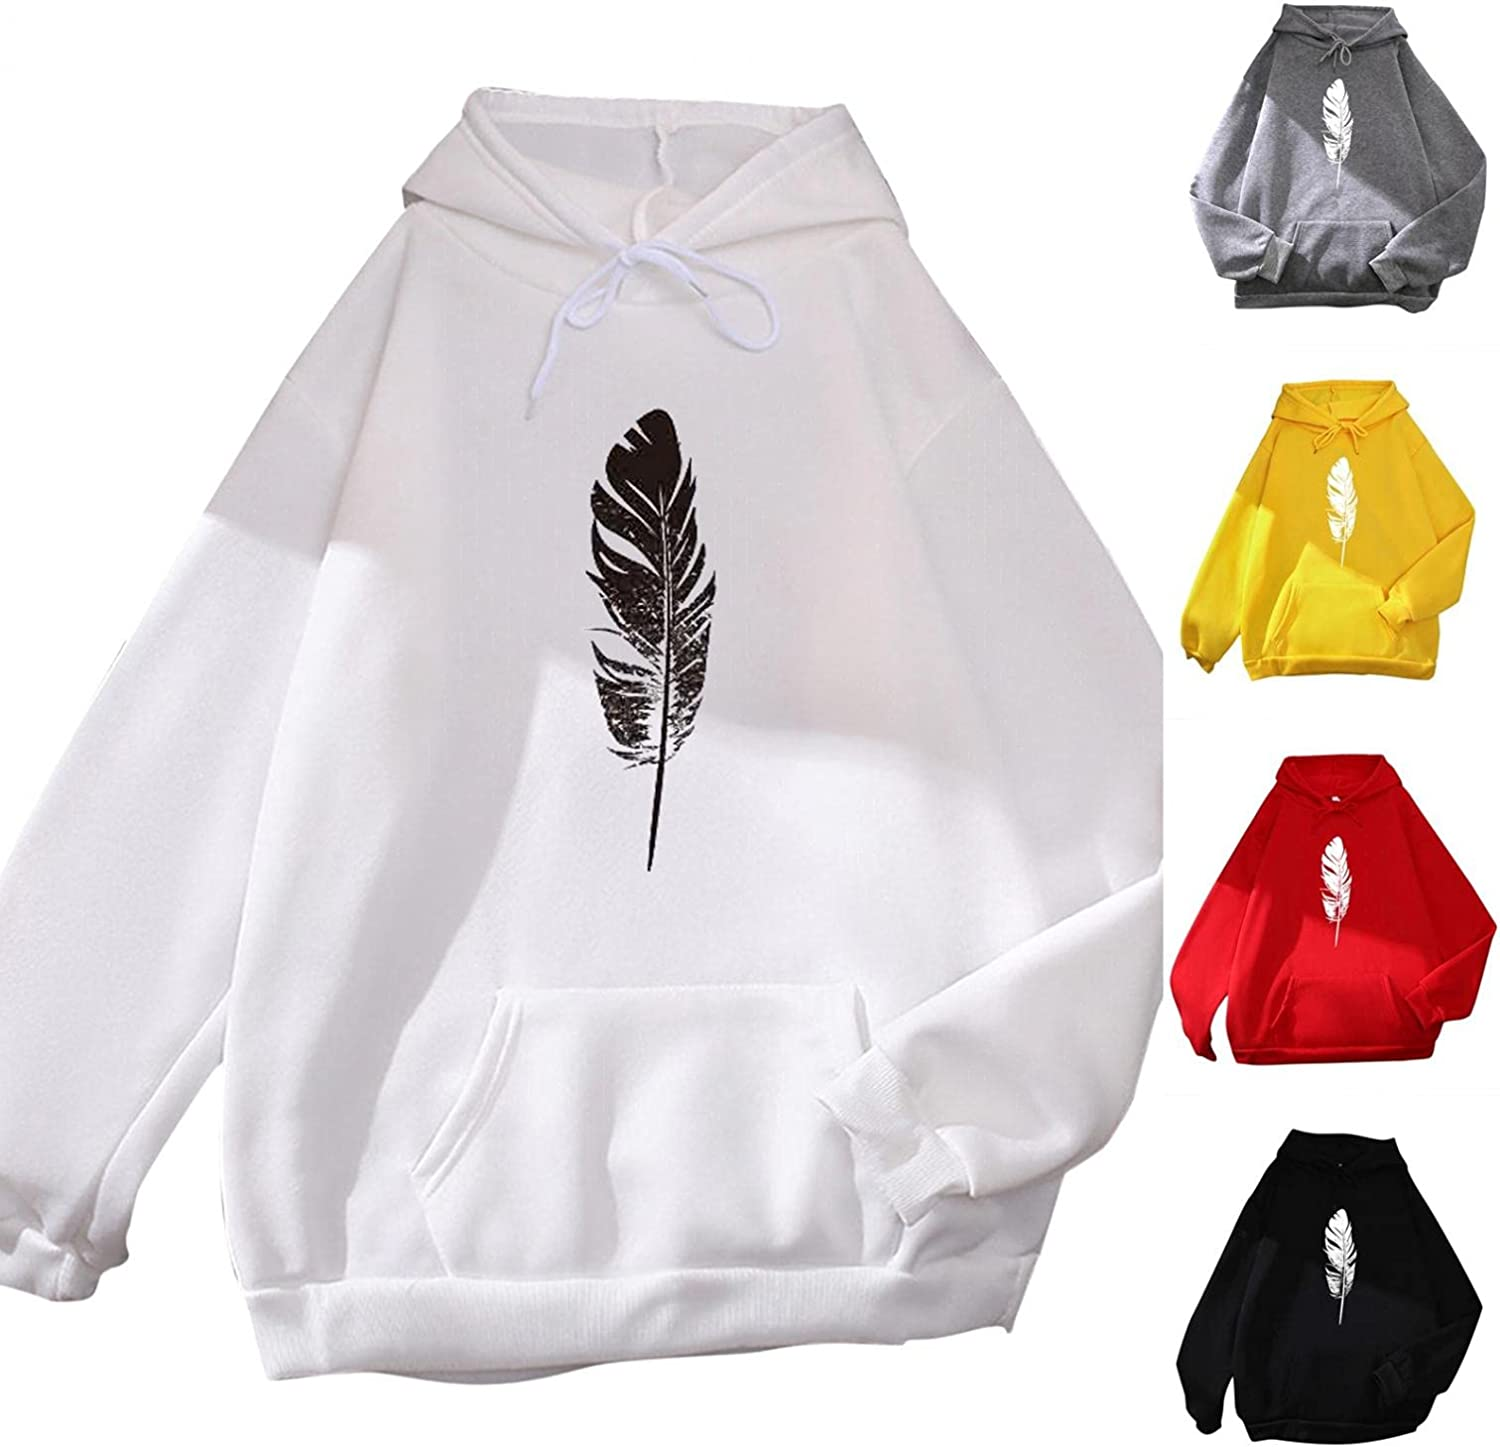 lucyouth Hoodies for Women Teens Girls Long Sleeve Casual Feather Pocket Cute Winter Clothes Pullover Sweatshirt Tops